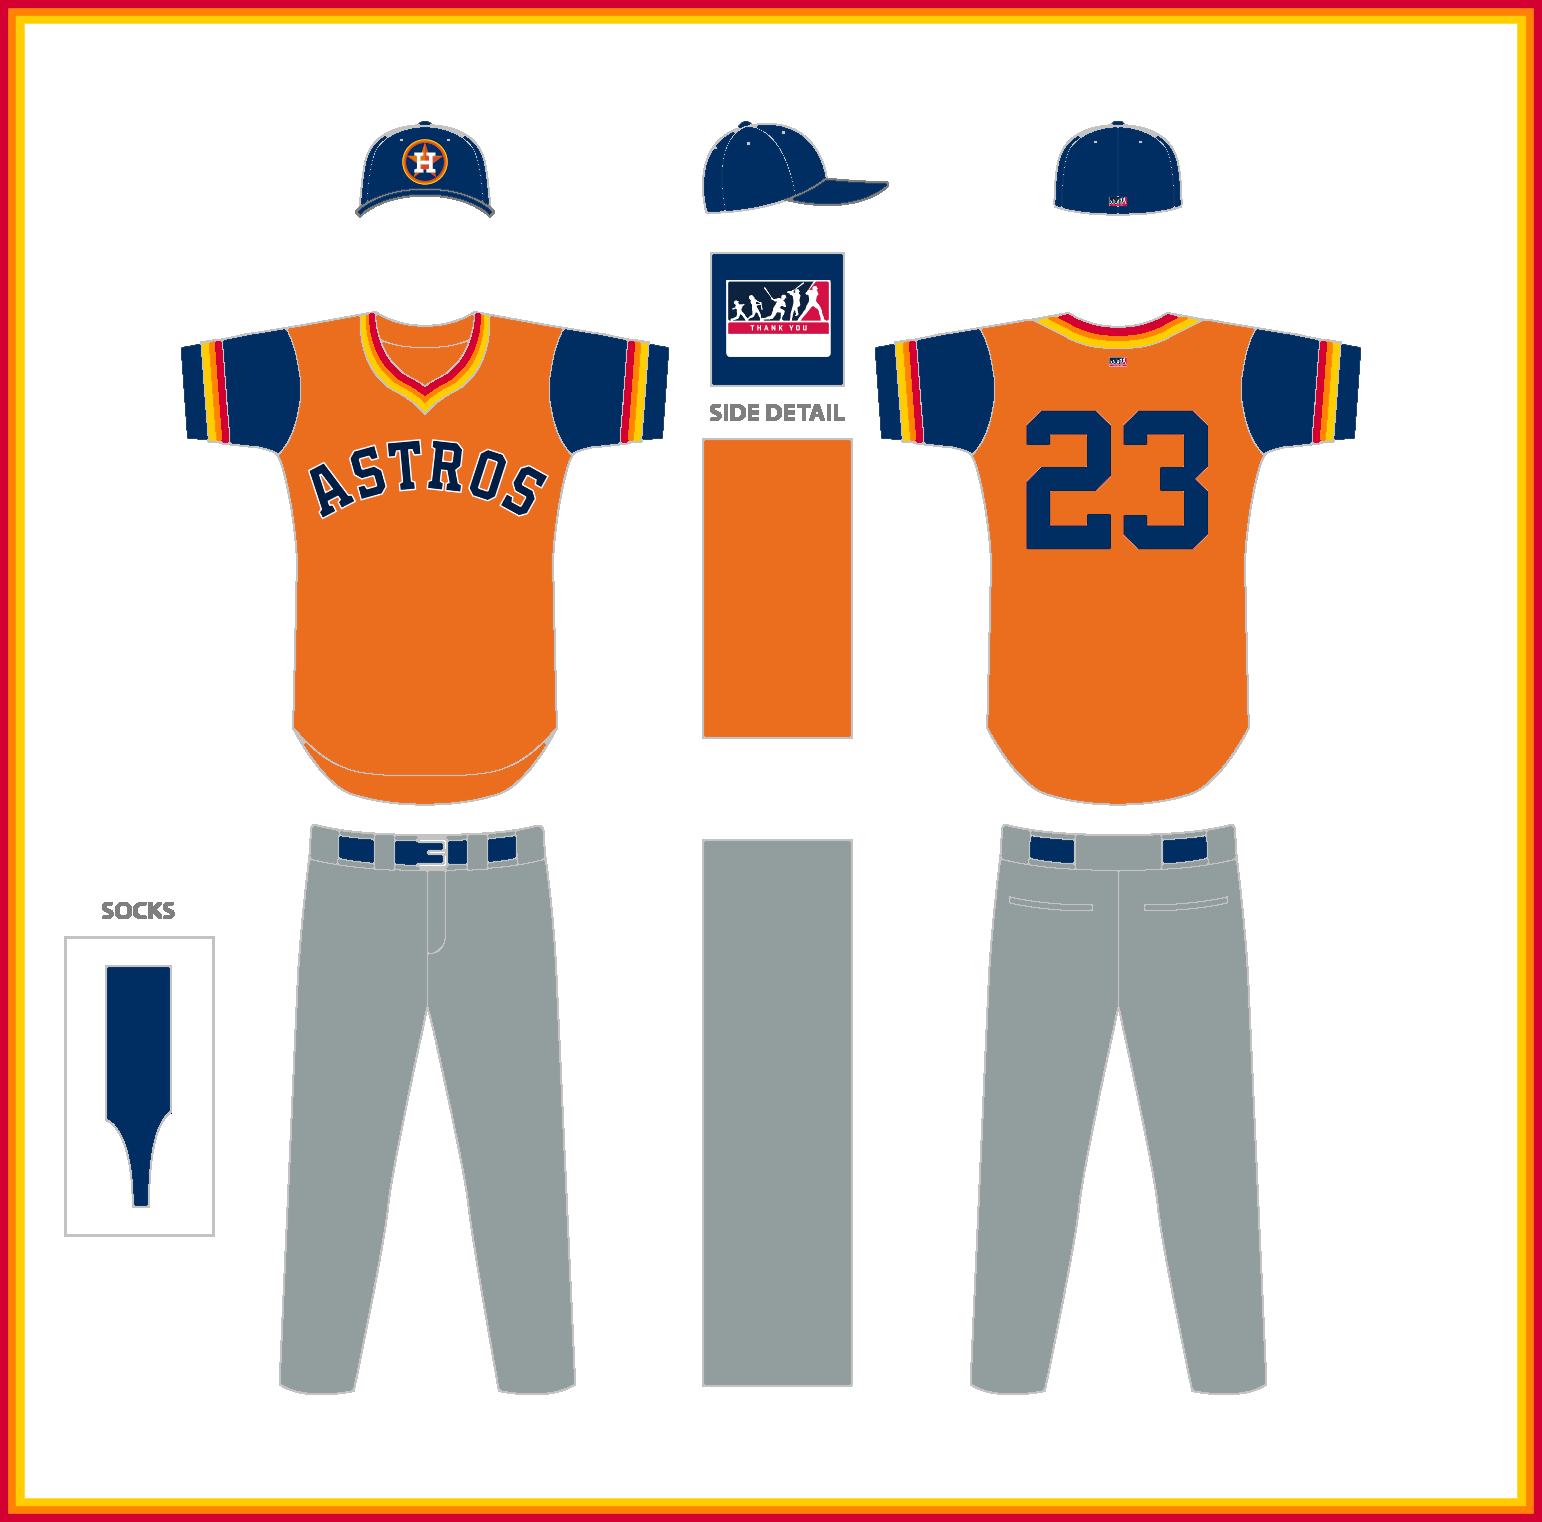 Astros_Players_Weekend.png